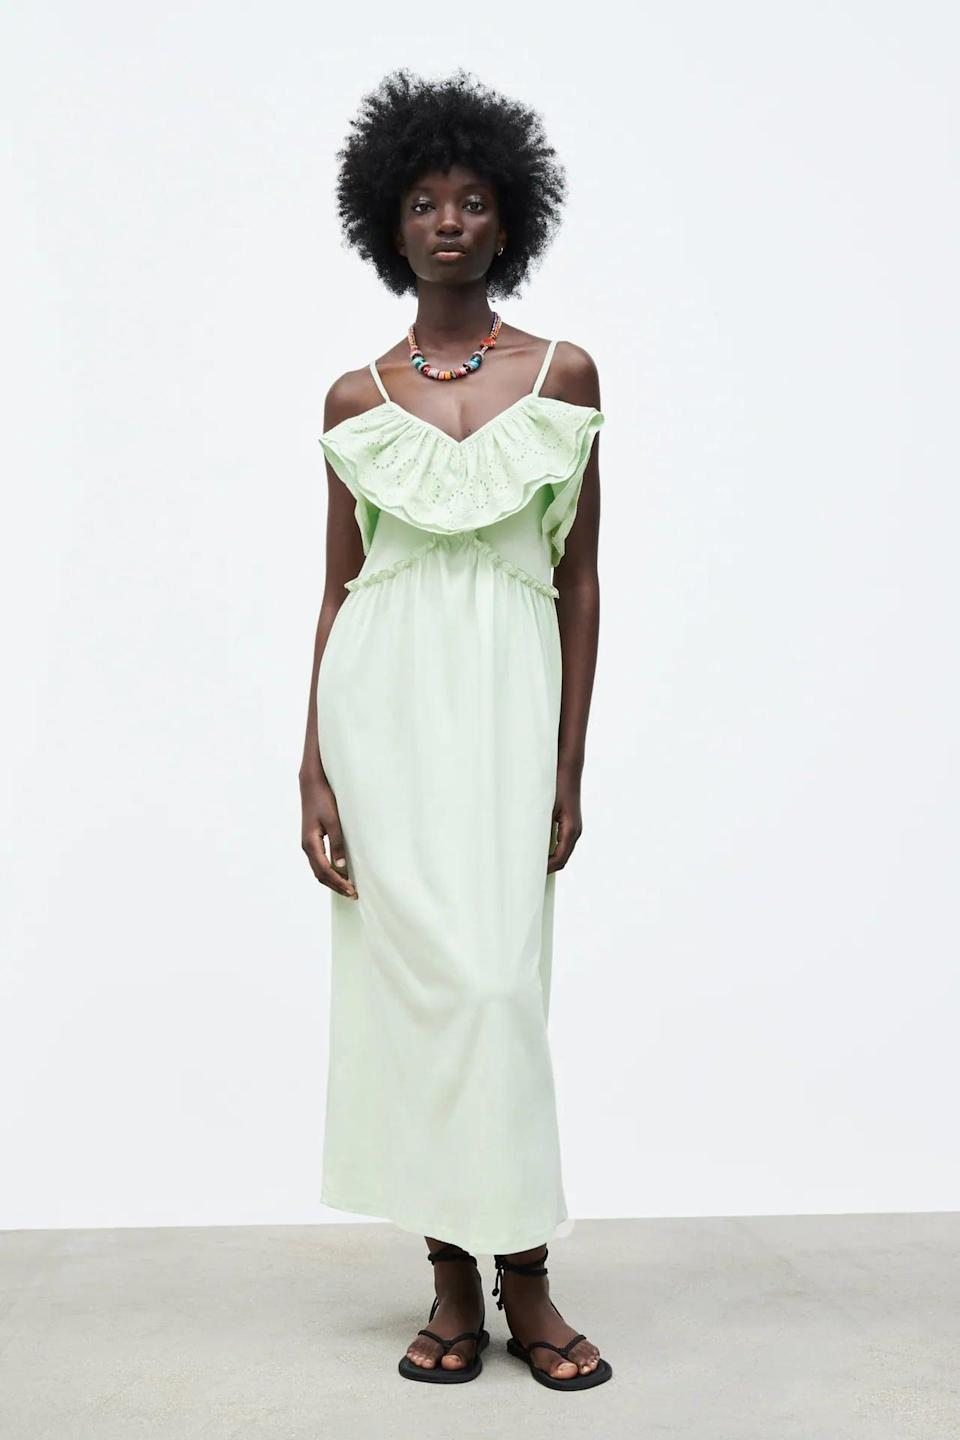 <p>This <span>Zara Mint Green Long Dress</span> ($40) looks very summery, and the ruffle makes it stand out even more. It's ideal for brunch parties that extend into happy hour drinks.</p>